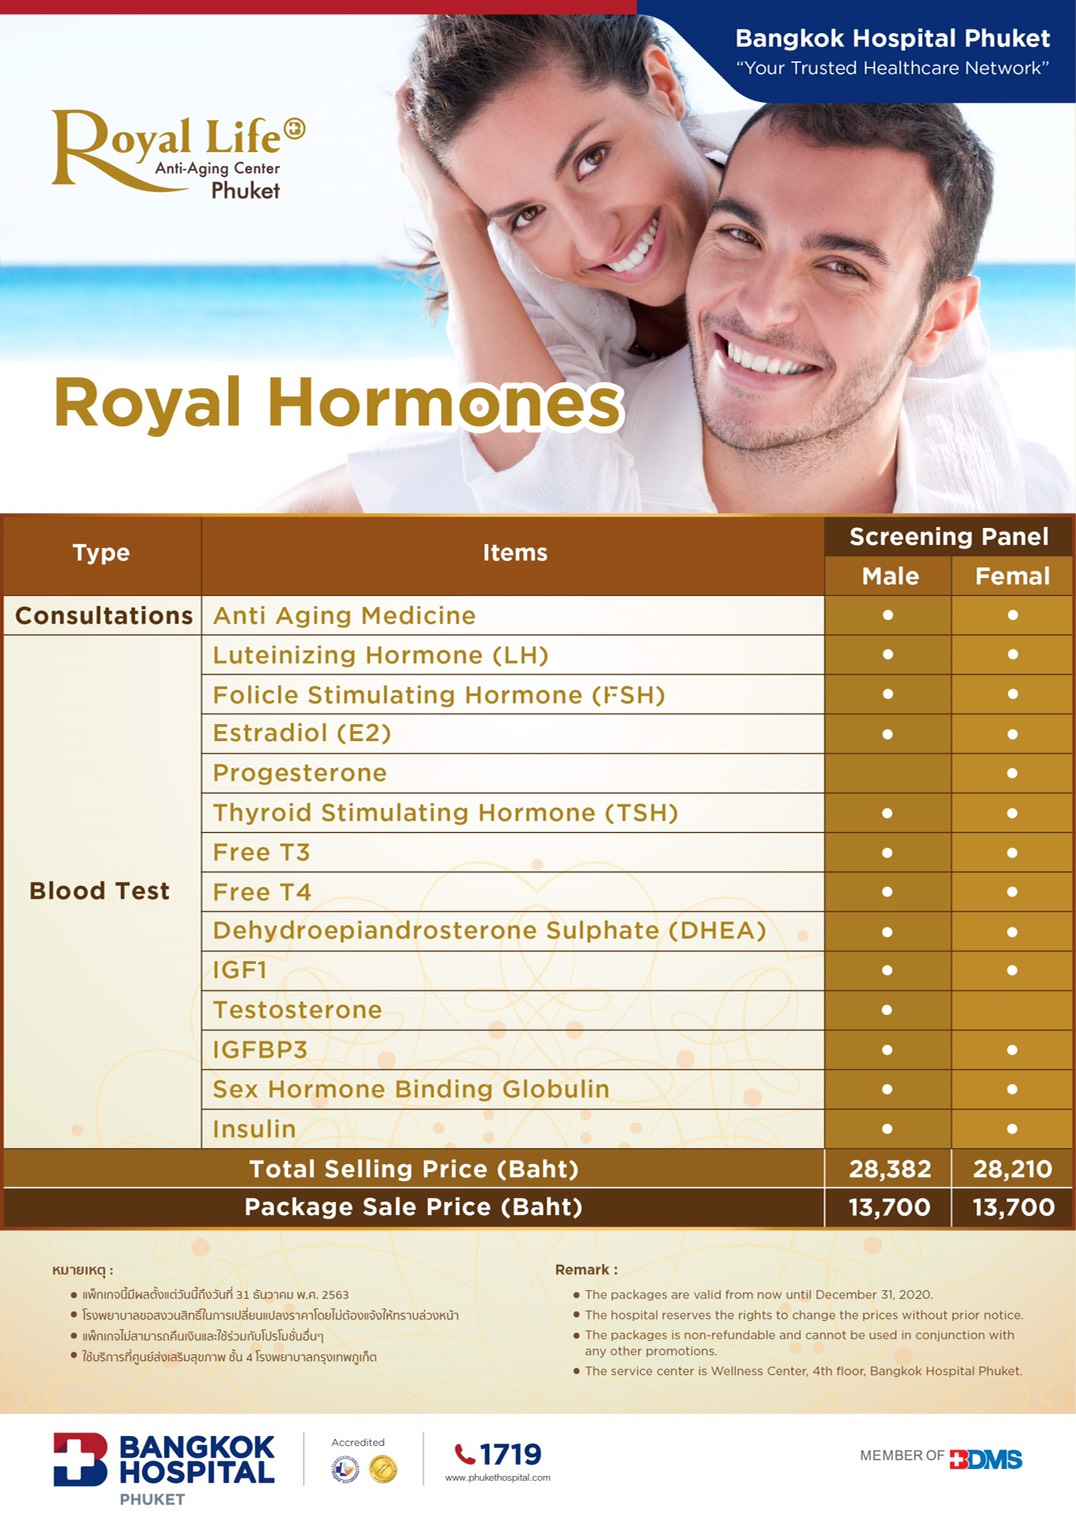 Royal Hormones